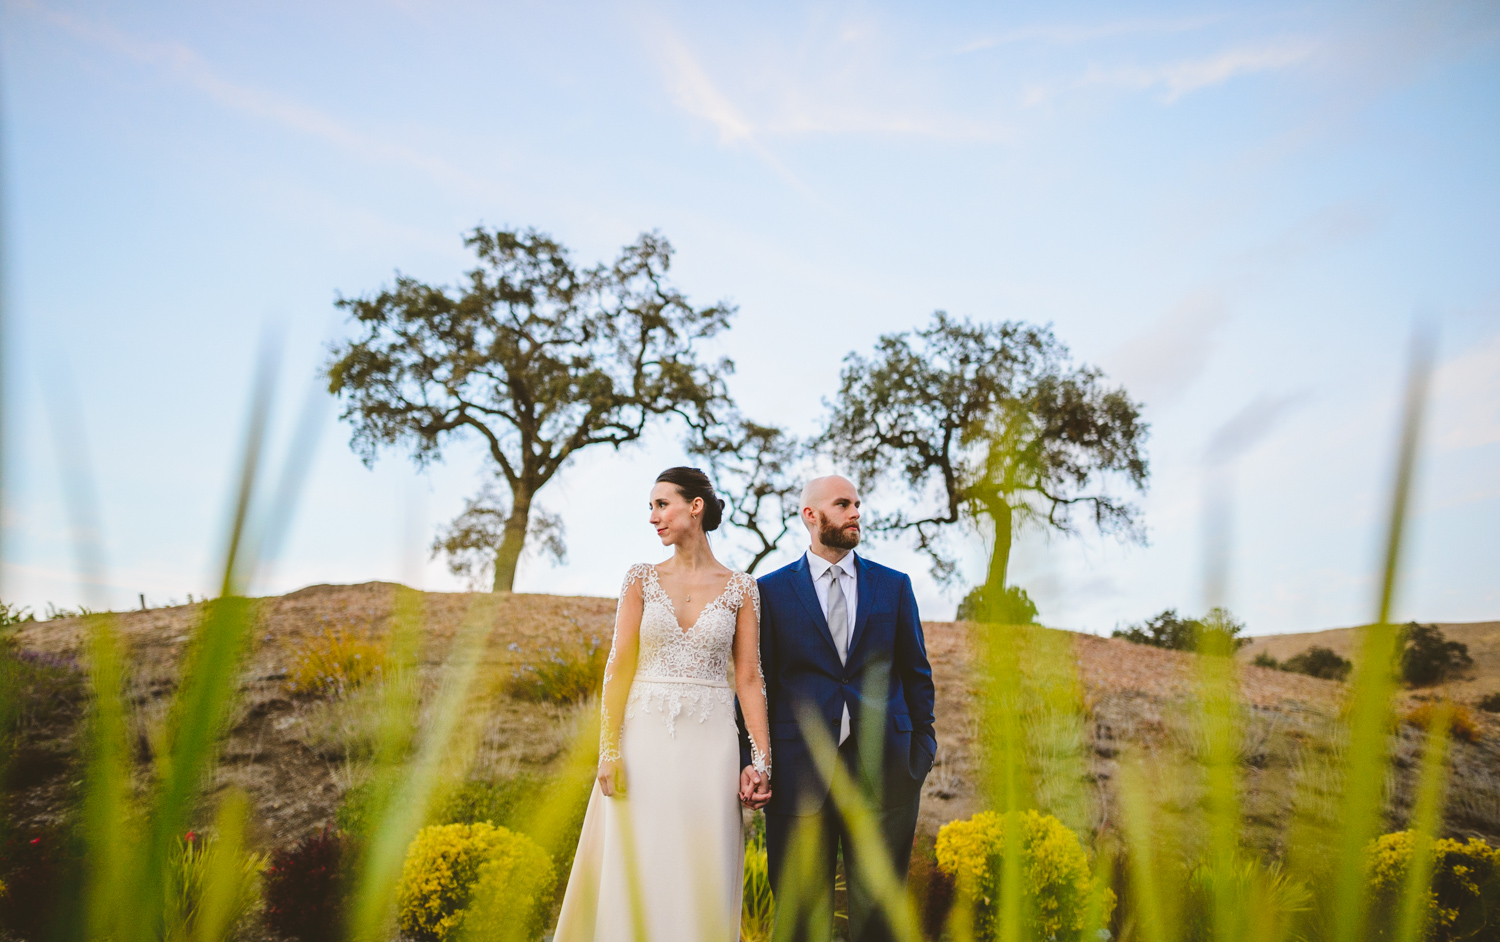 026 - creative portrait of bride and groom with california tree in the background.jpg